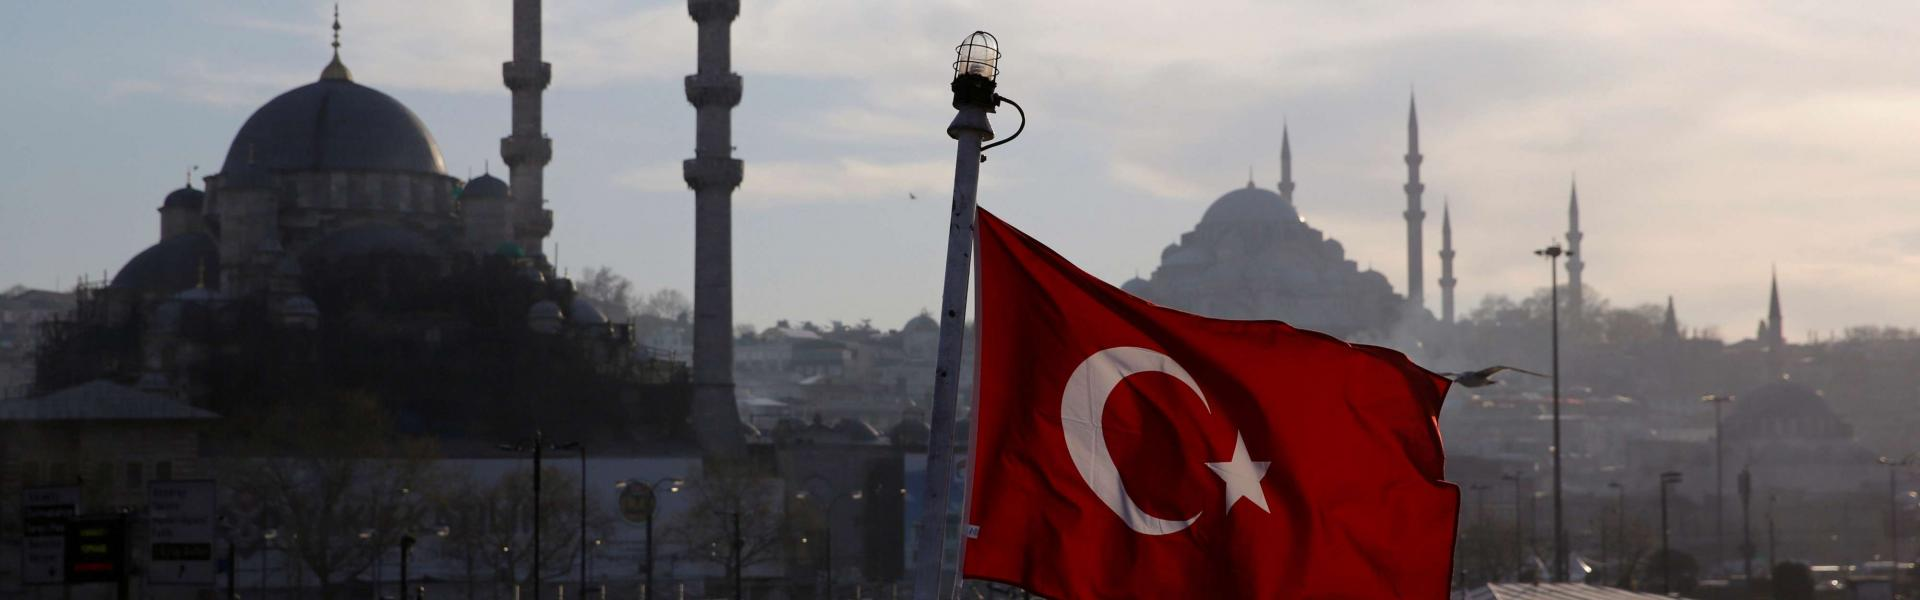 A Turkish flag, with the New and the Suleymaniye mosques in the background, flies on a passenger ferry in Istanbul, Turkey, April 11, 2019. REUTERS/Murad Sezer